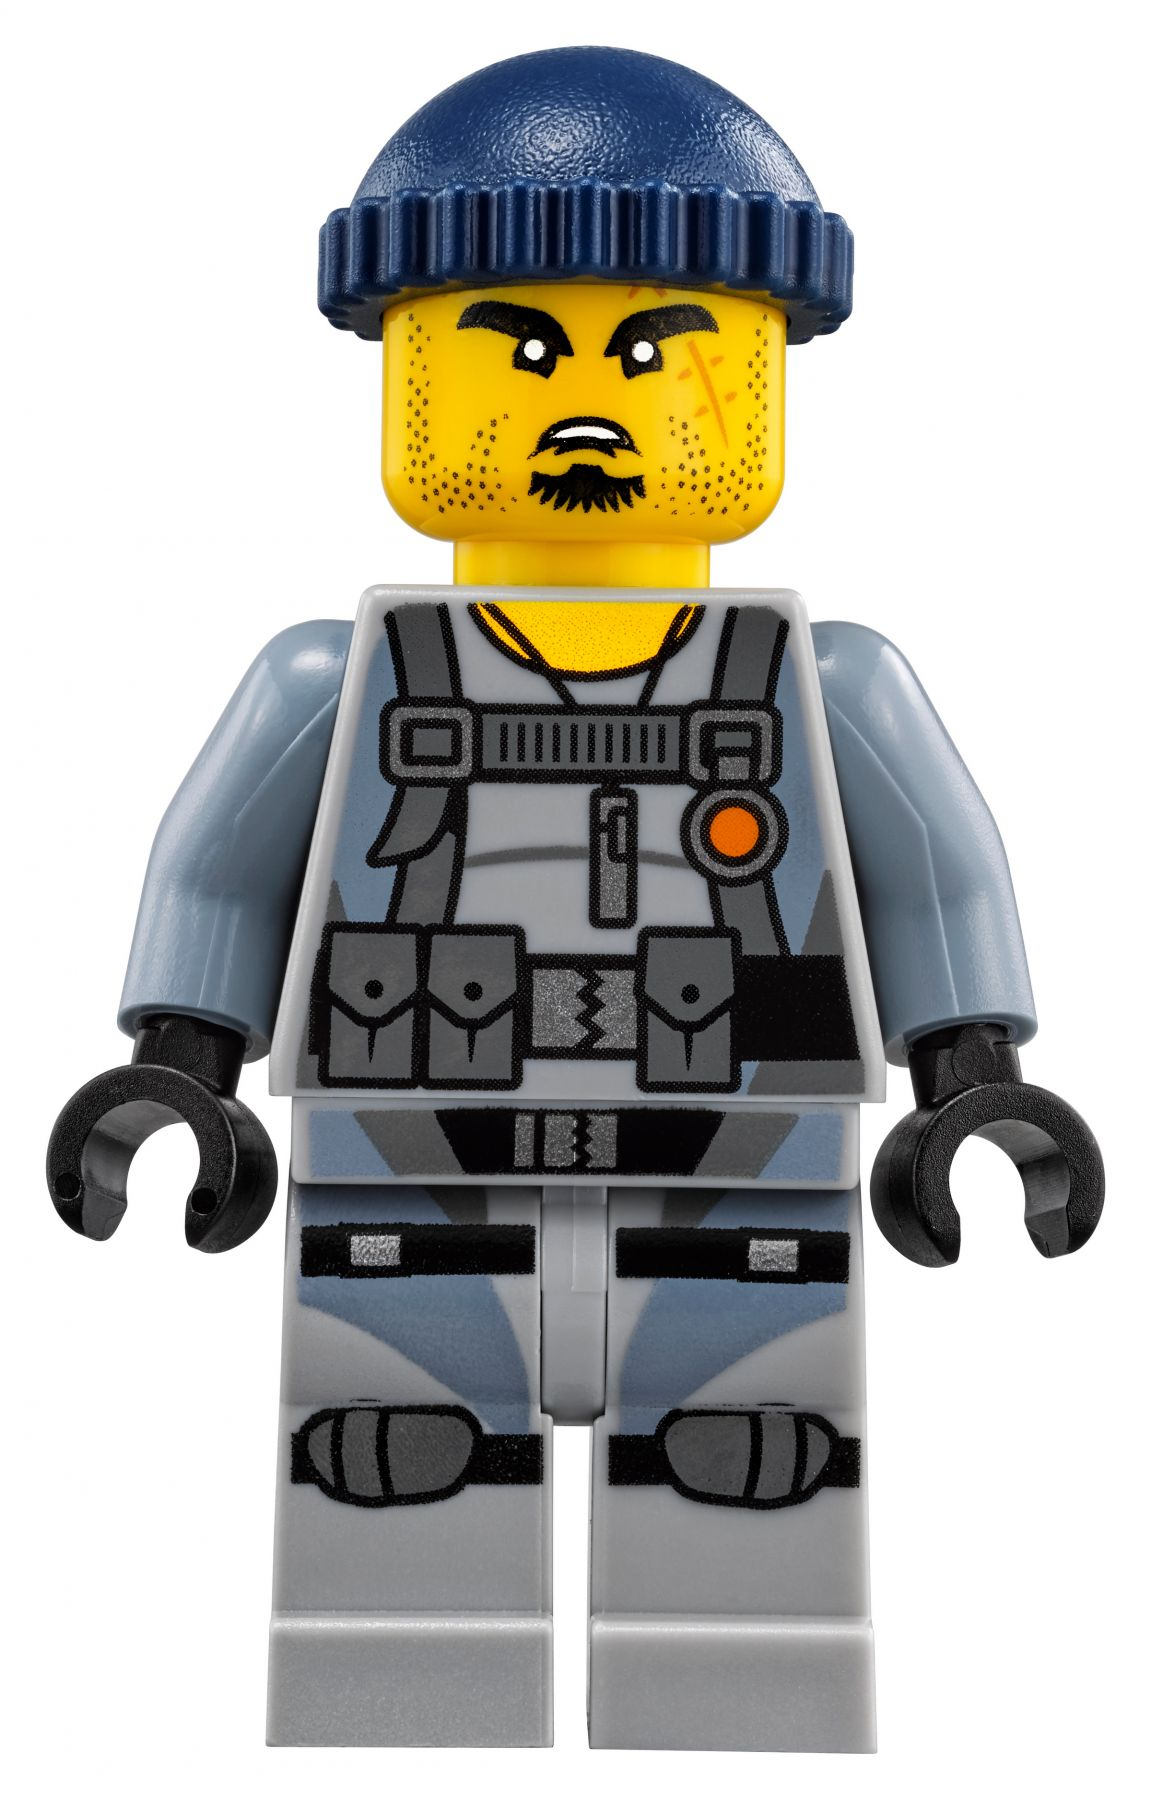 LEGO The LEGO Ninjago Movie 70620 Ninjago City LEGO_70620_alt32.jpg